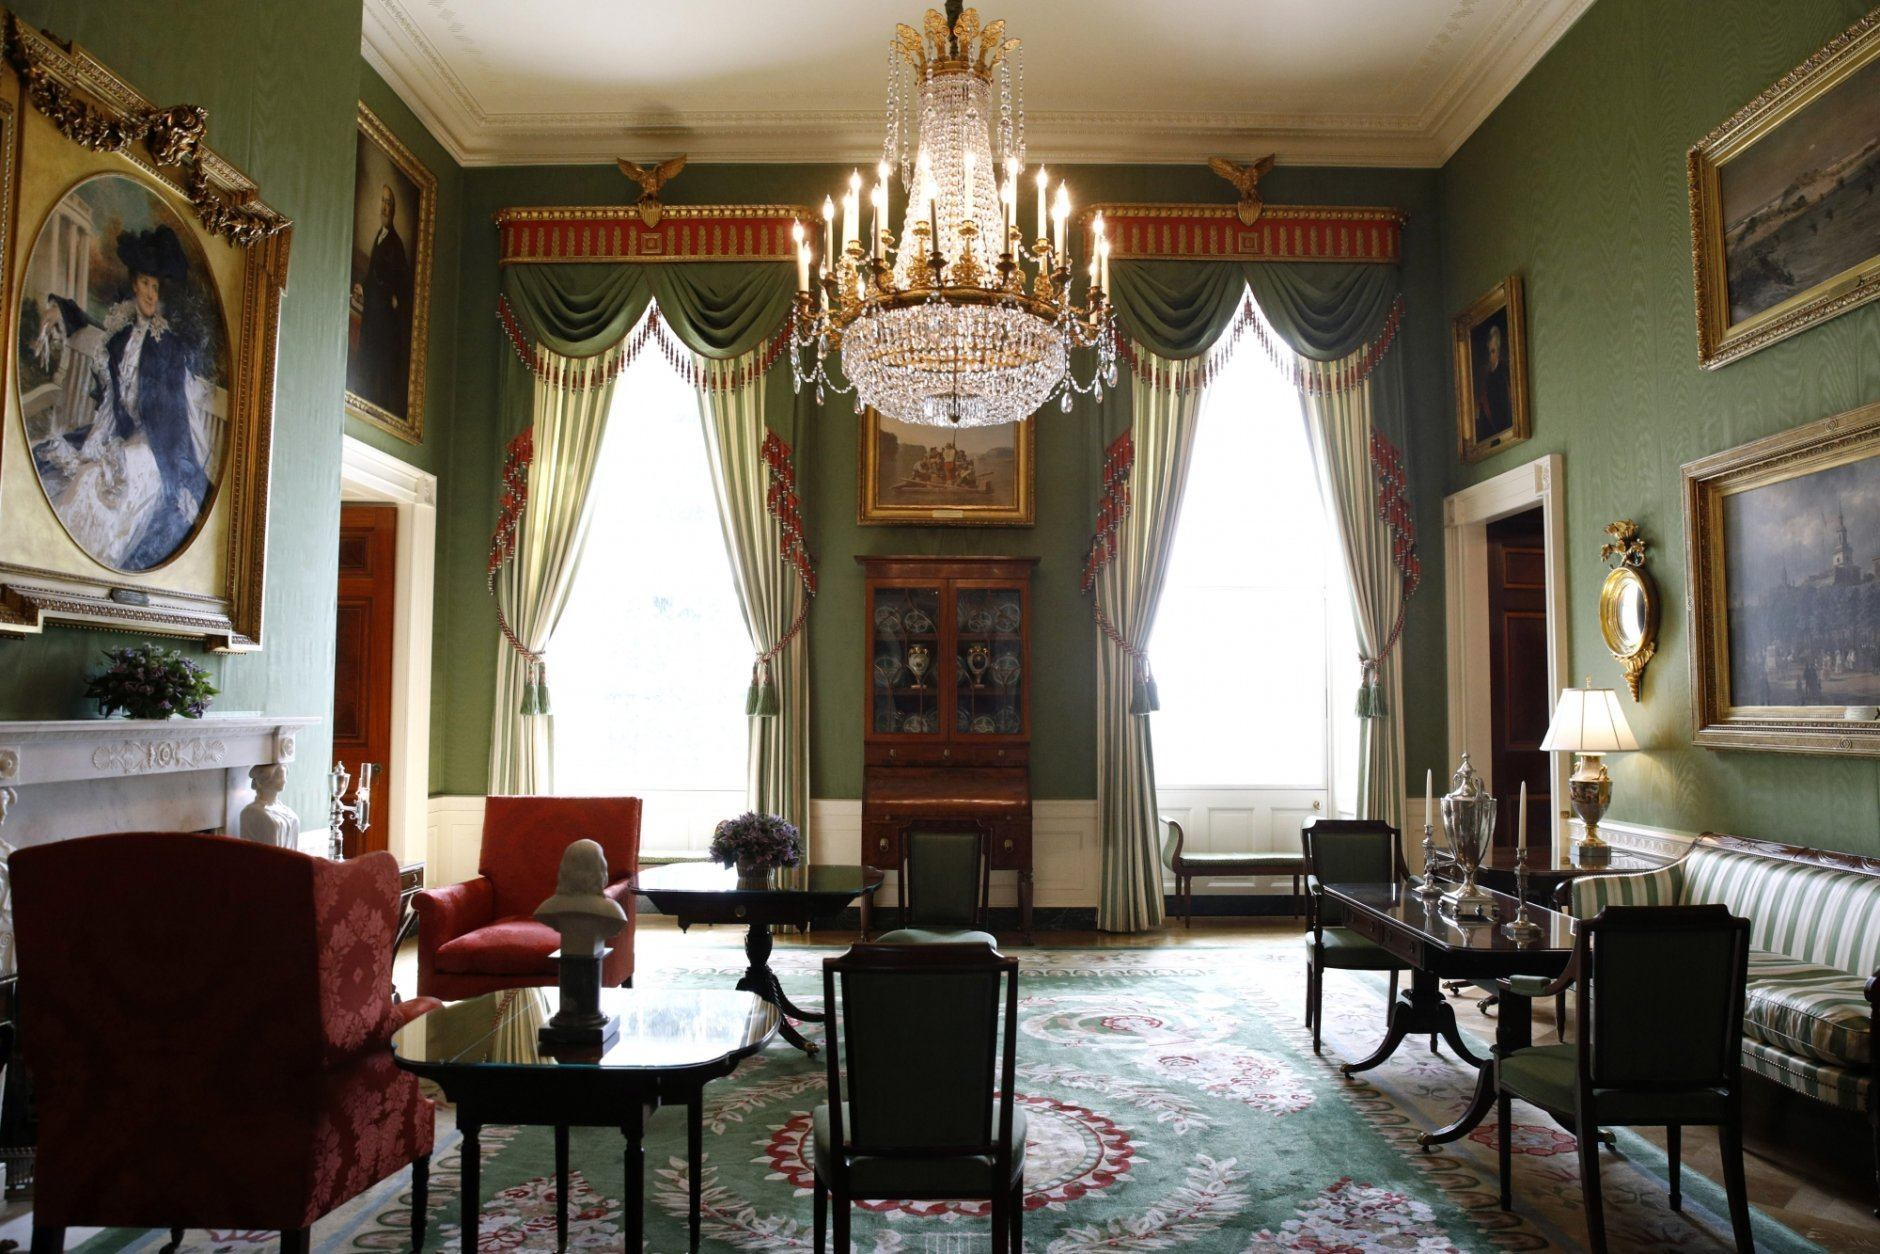 This Sept. 17, 2019, photo shows repurposed draperies in the Green Room of the White House in Washington, which are among the improvement projects that first lady Melania Trump has overseen to keep the well-trod public rooms at 1600 Pennsylvania Avenue looking their museum-quality best. (AP Photo/Patrick Semansky)